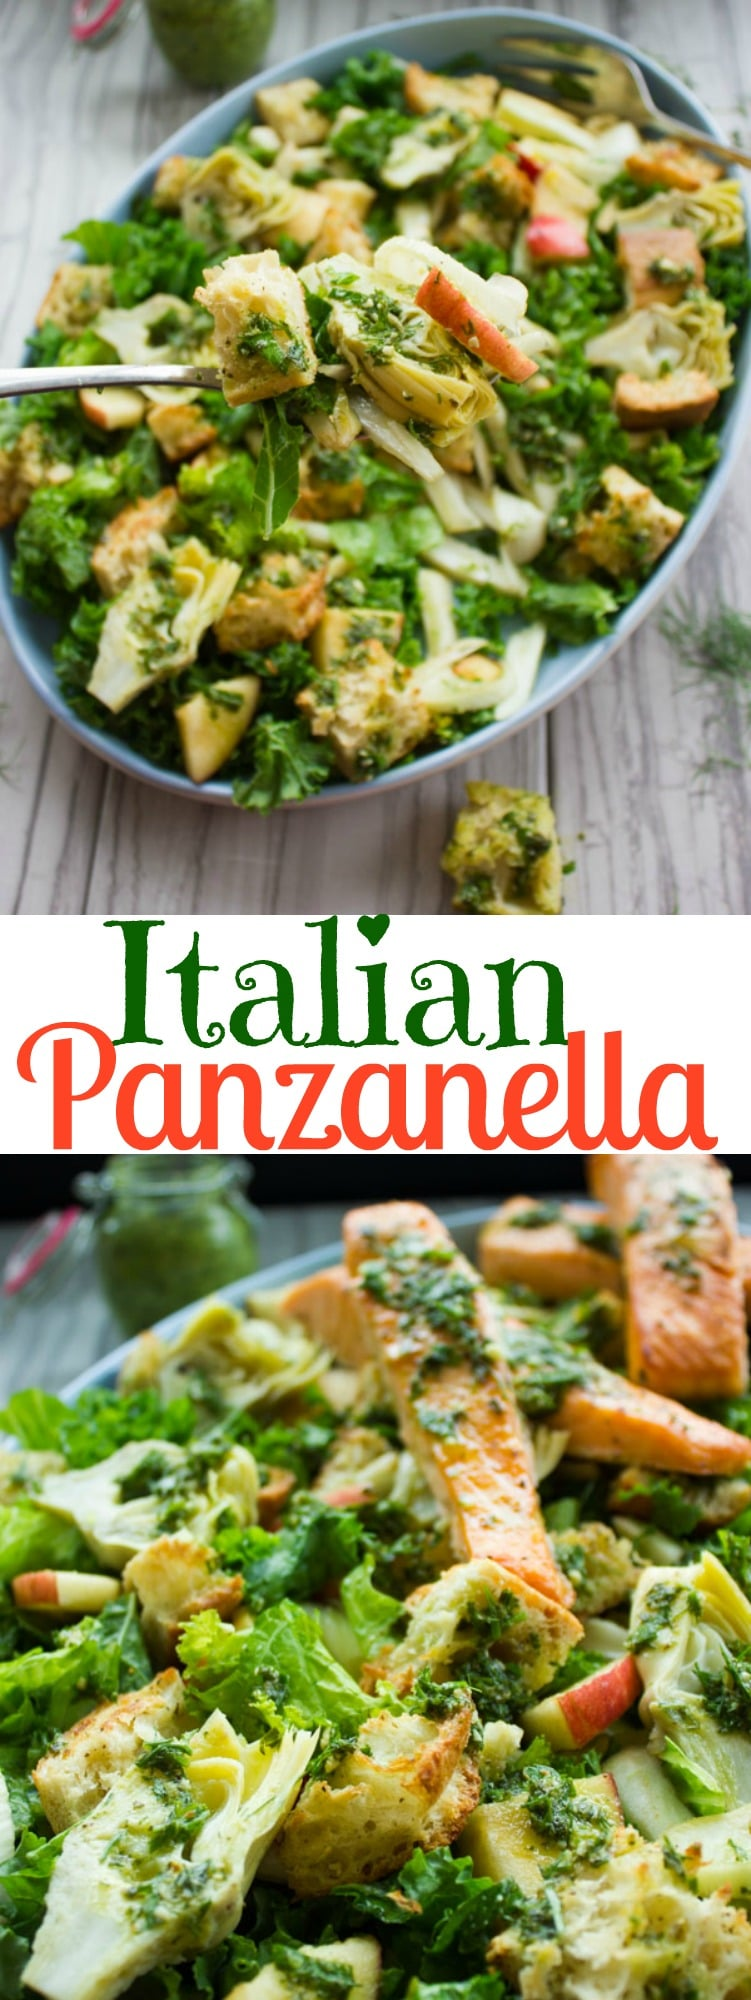 This gorgeous Italian Panzanella Salad with Kale, Artichoke Hears, Apple Slices, and Fennel makes for a wonderful springtime meal. Tossed with Basil Dressing and served with broiled salmon on top, this Italian classic is special and sophisticated enough to be served at any dinner party. #saladrecipes, #panzanella, #salmonrecipes, #dinnerpartyideas